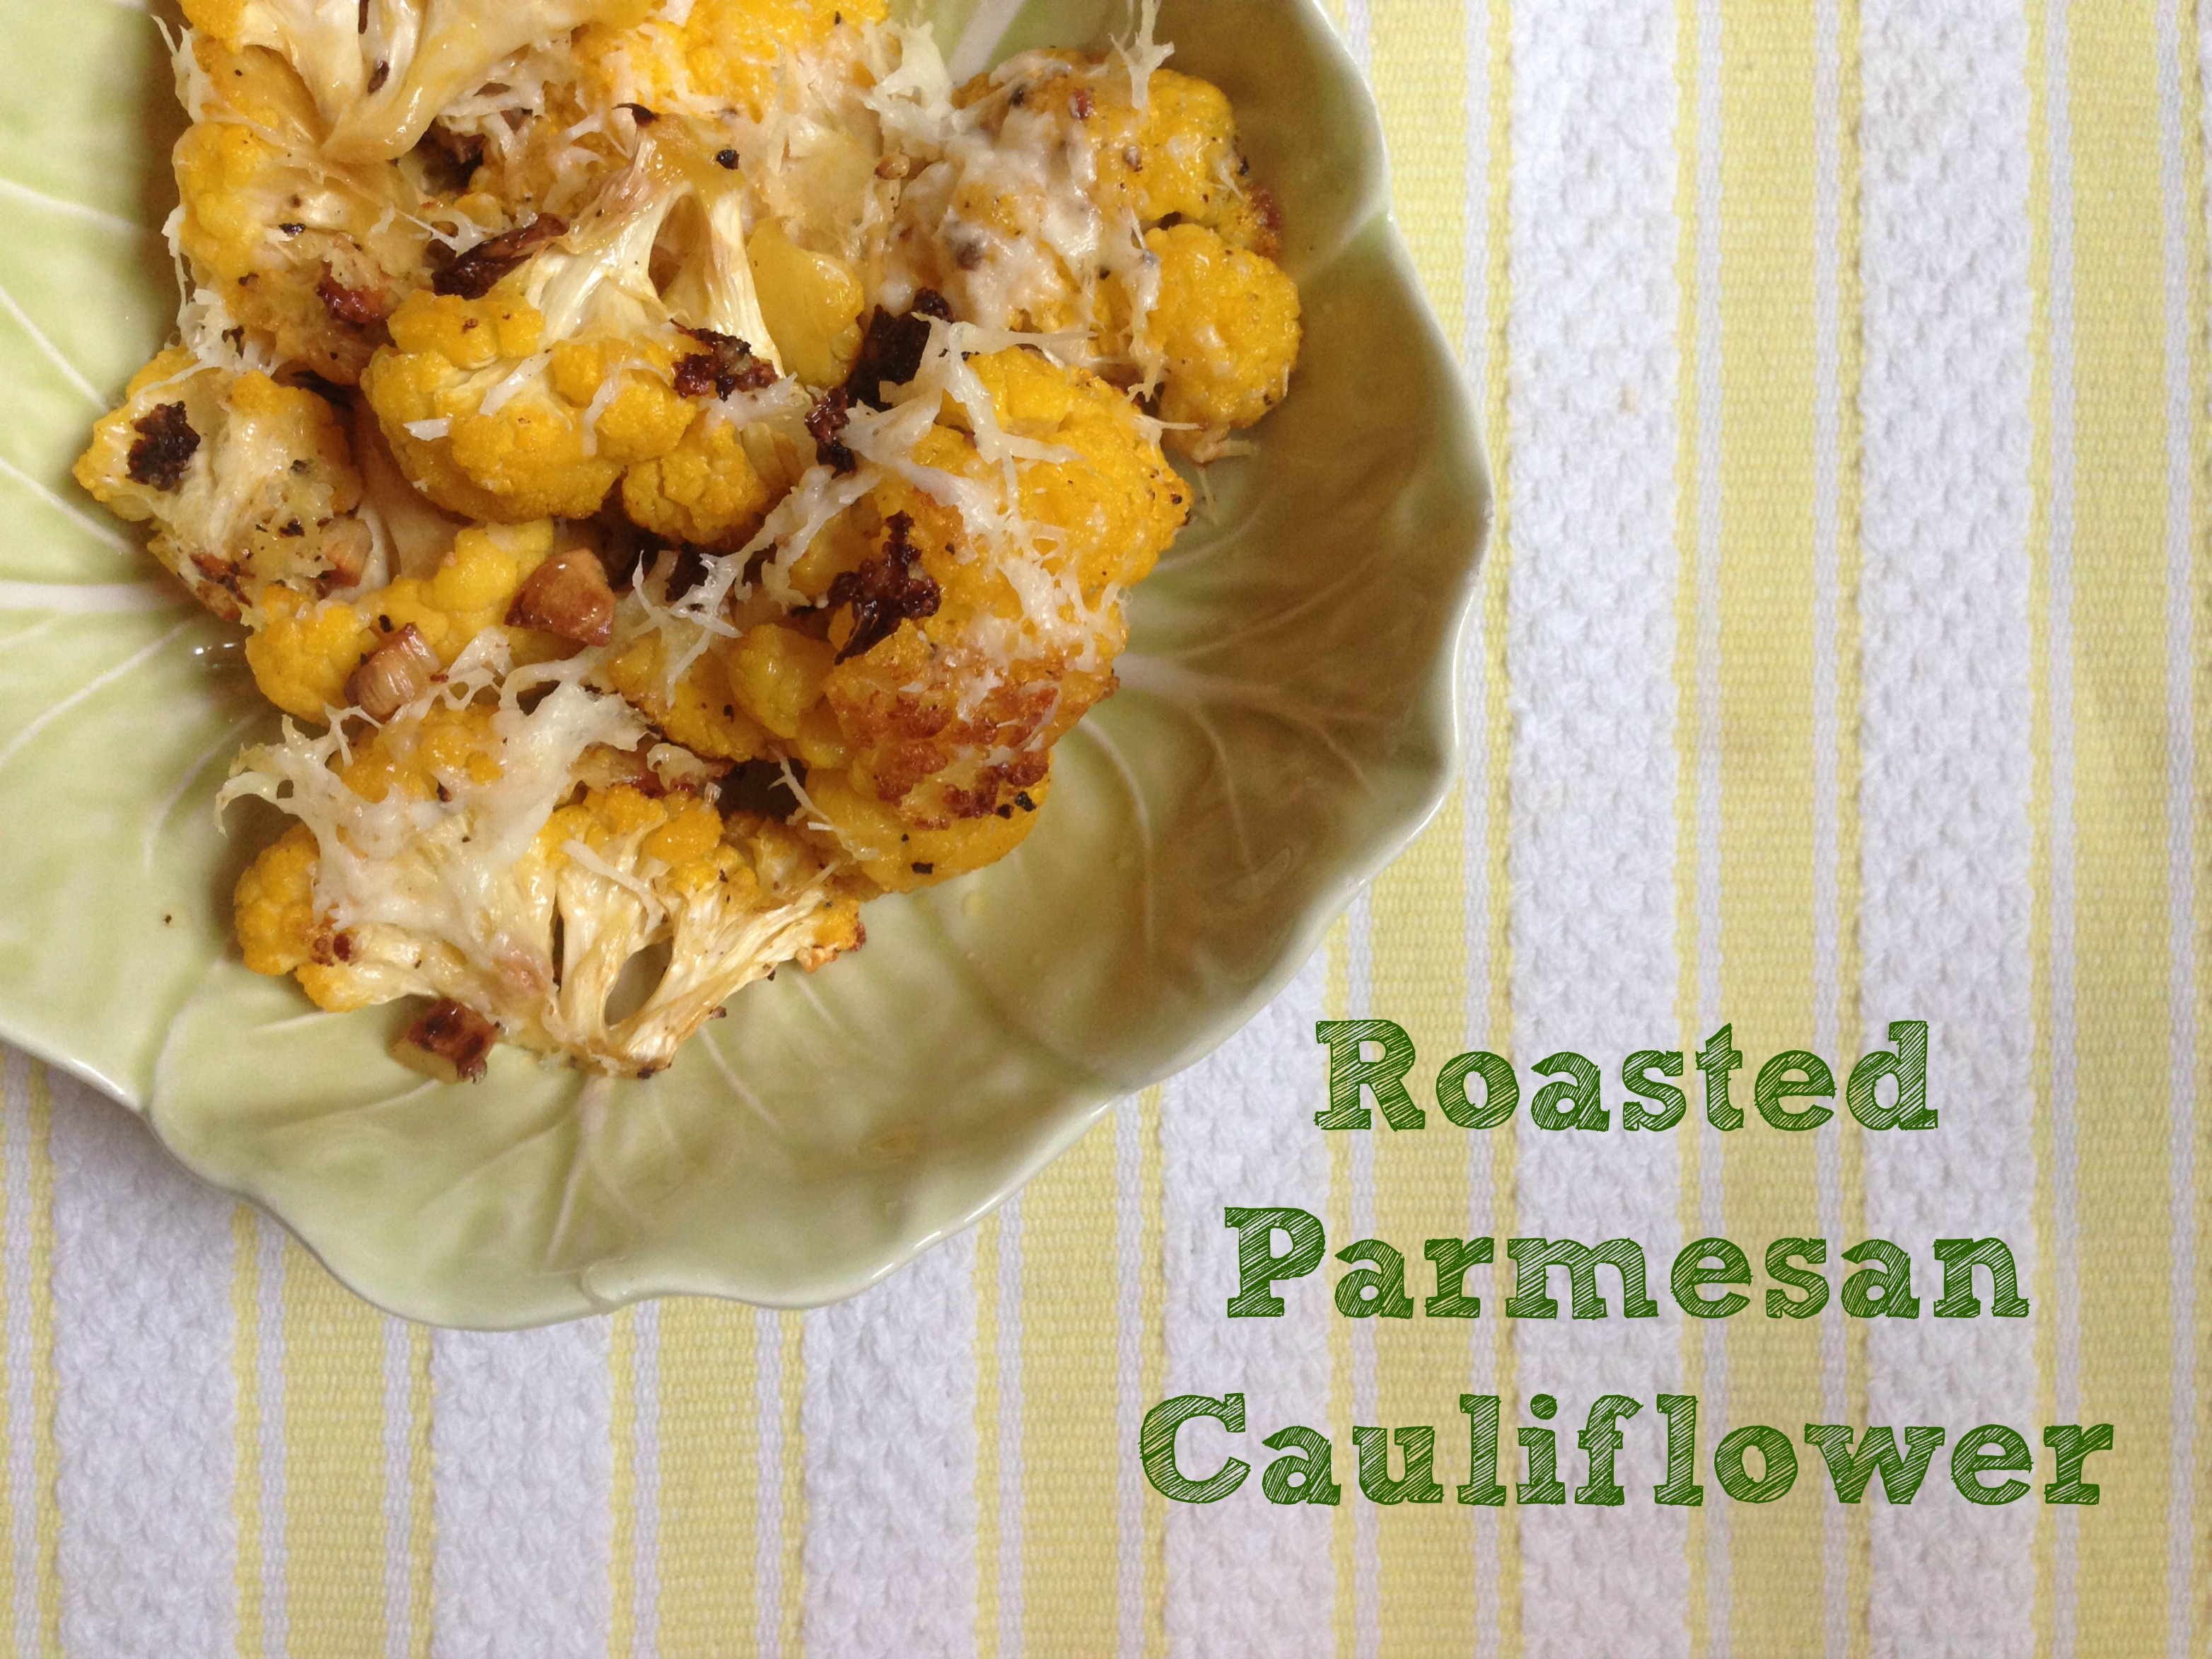 roasted parmesan cauliflower